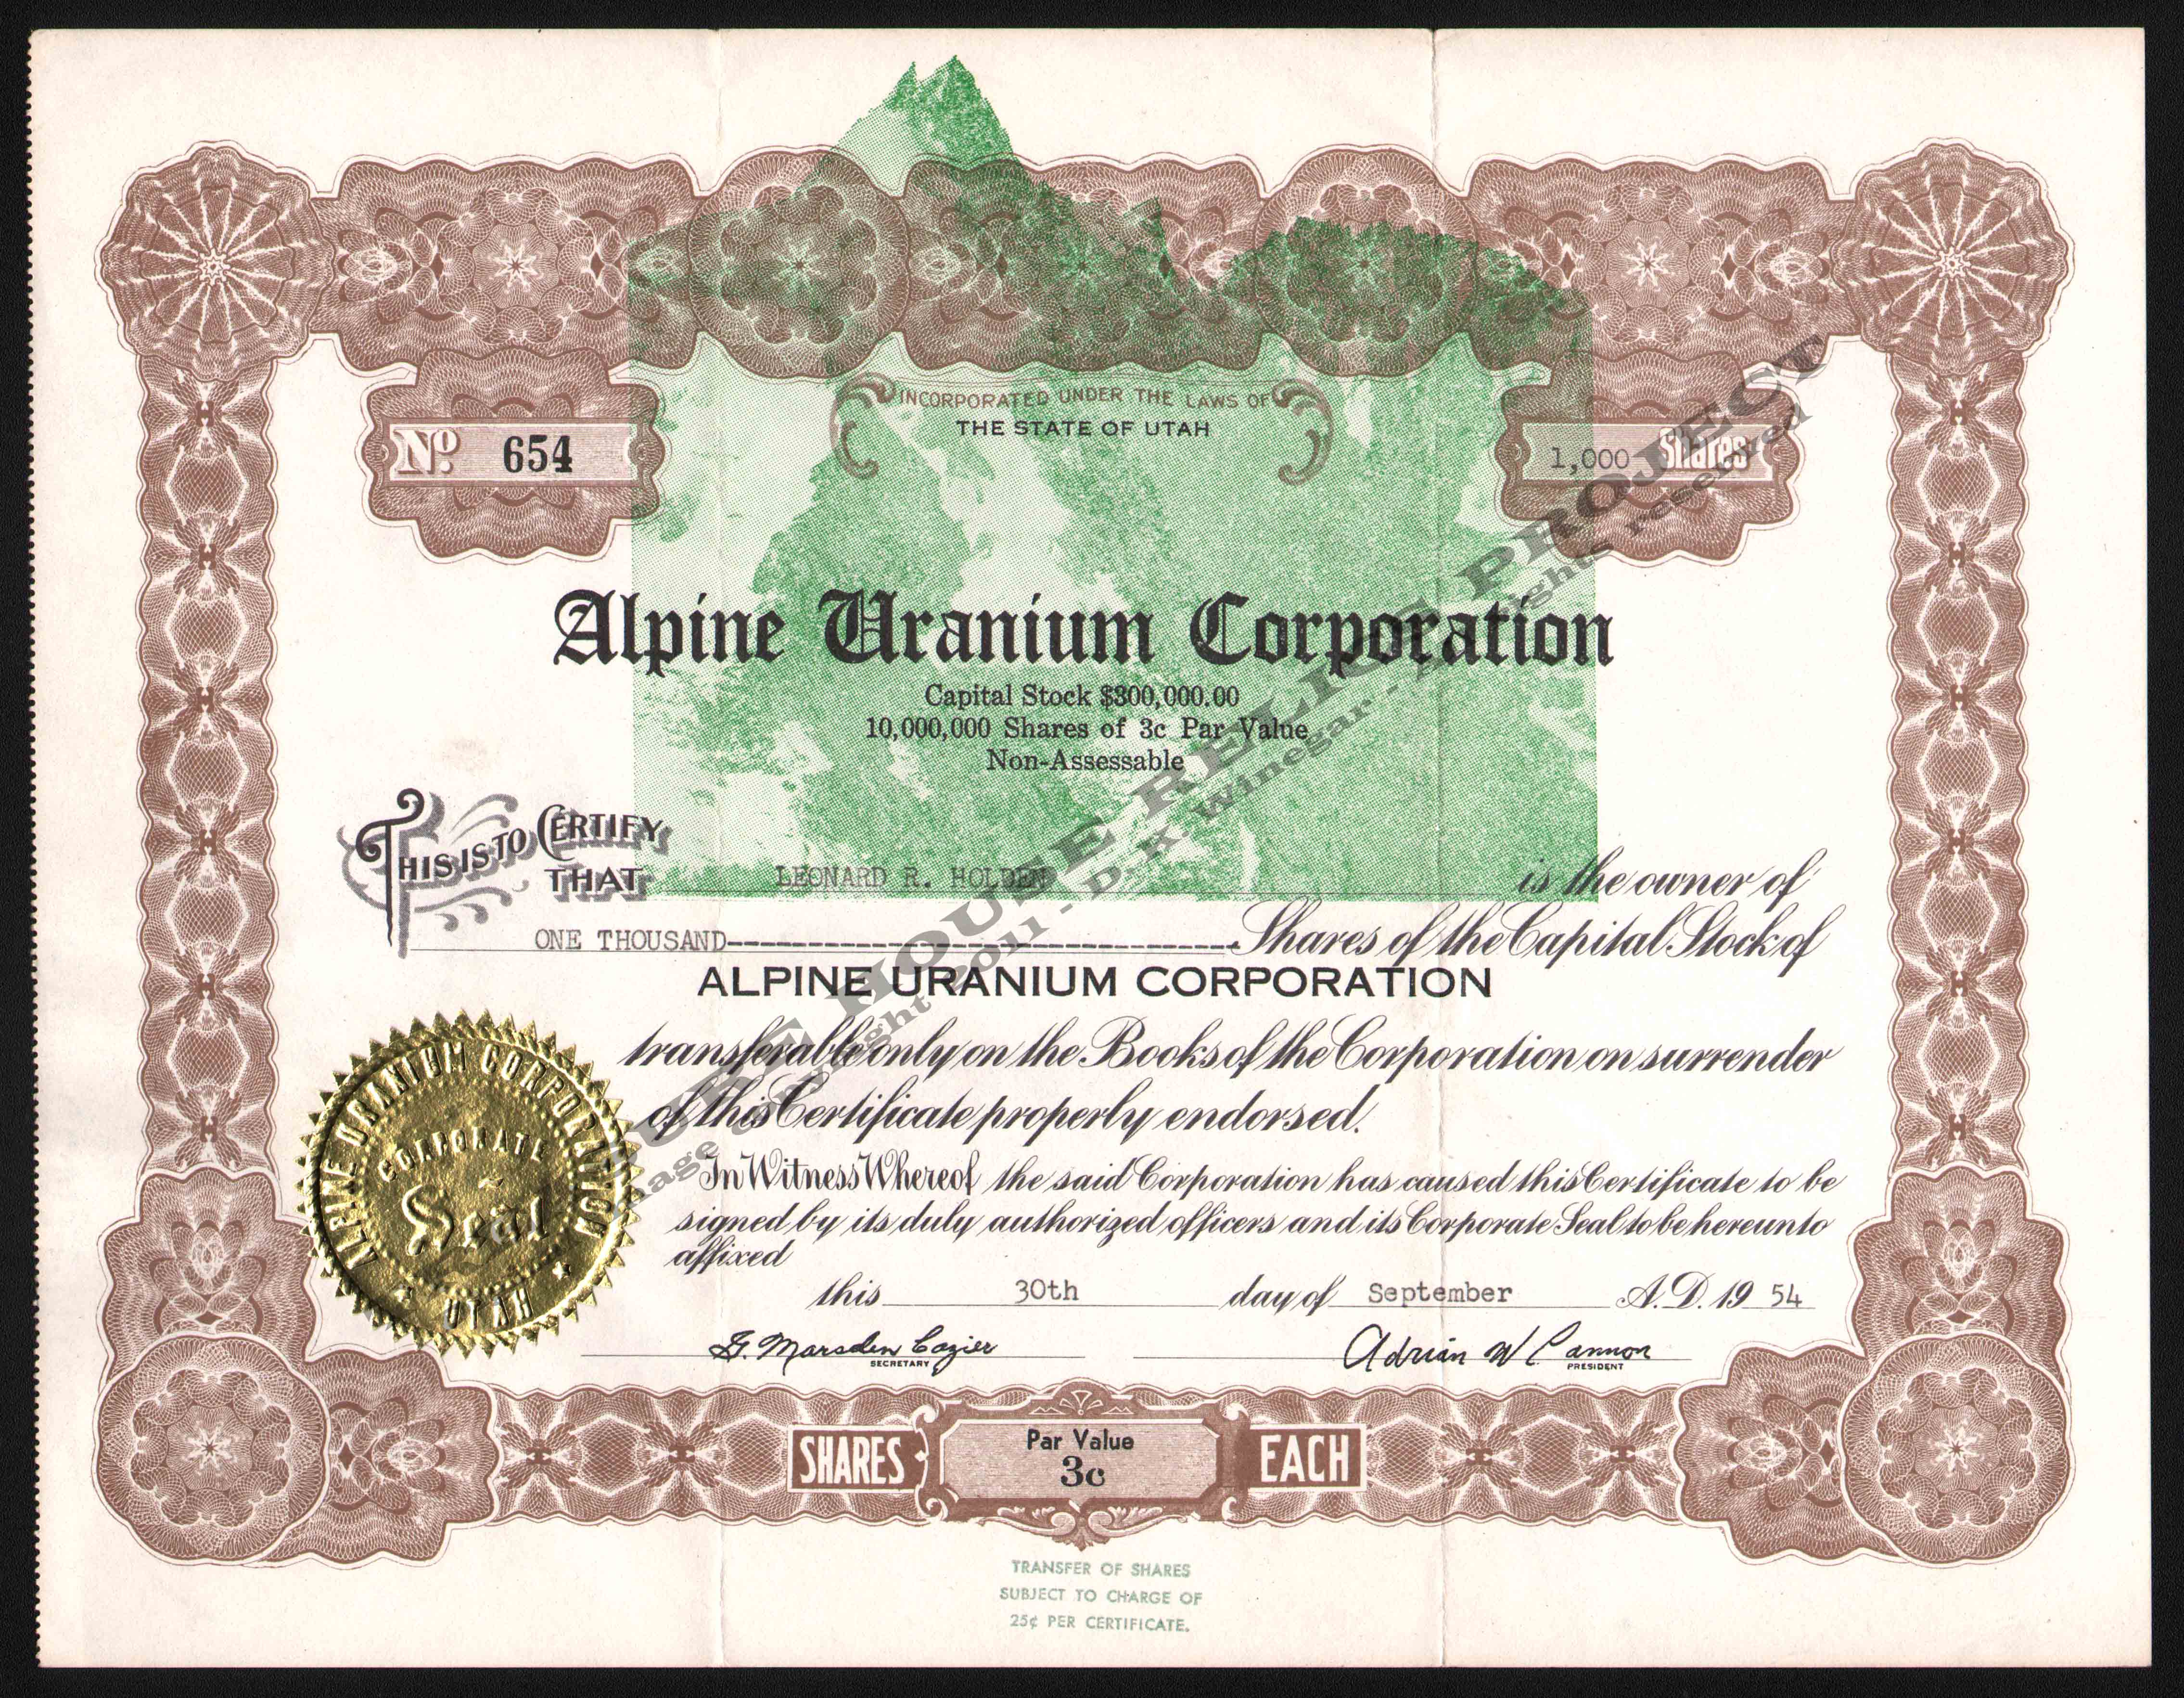 ALPINE_URANIUM_CORPORATION_654_1954_400_EMBOSS.jpg